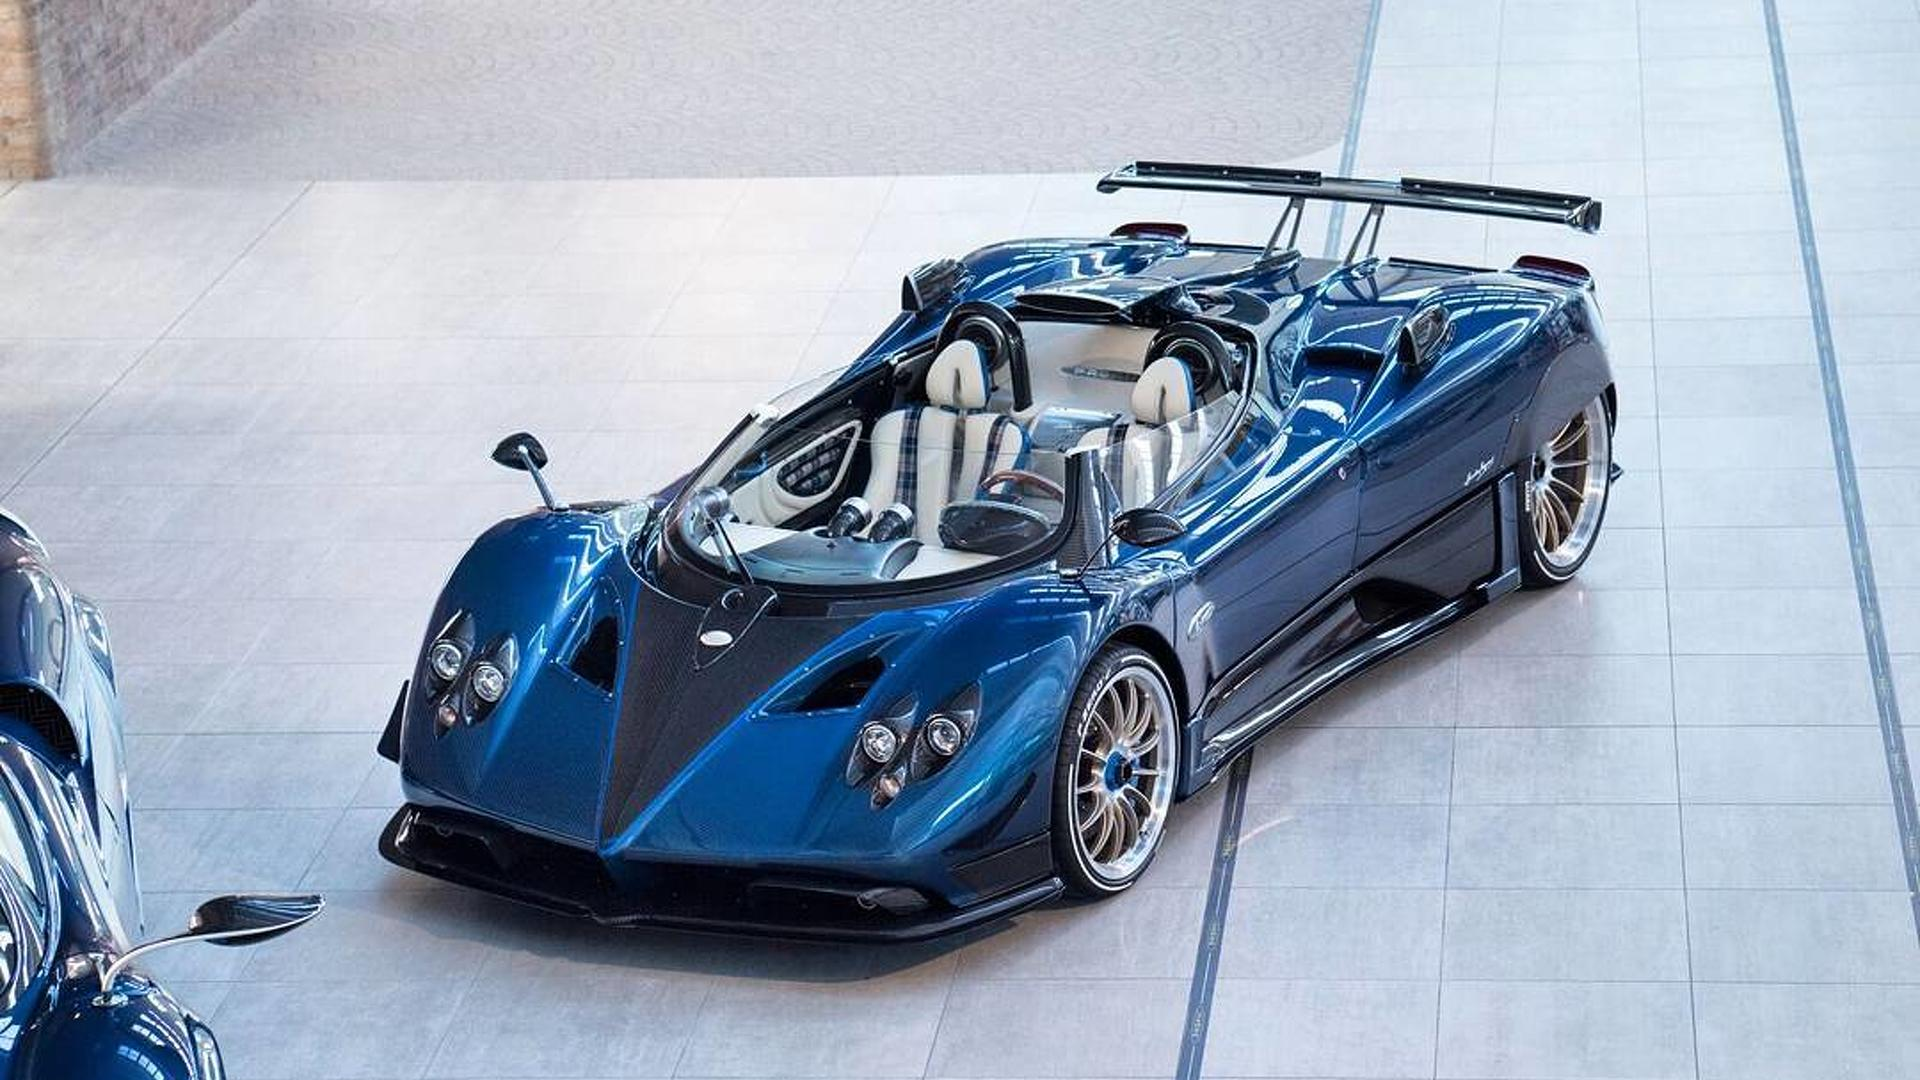 First Lamborghini Ever Made >> Horacio's Pagani Zonda HP Barchetta is Drop-Dead Gorgeous - autoevolution